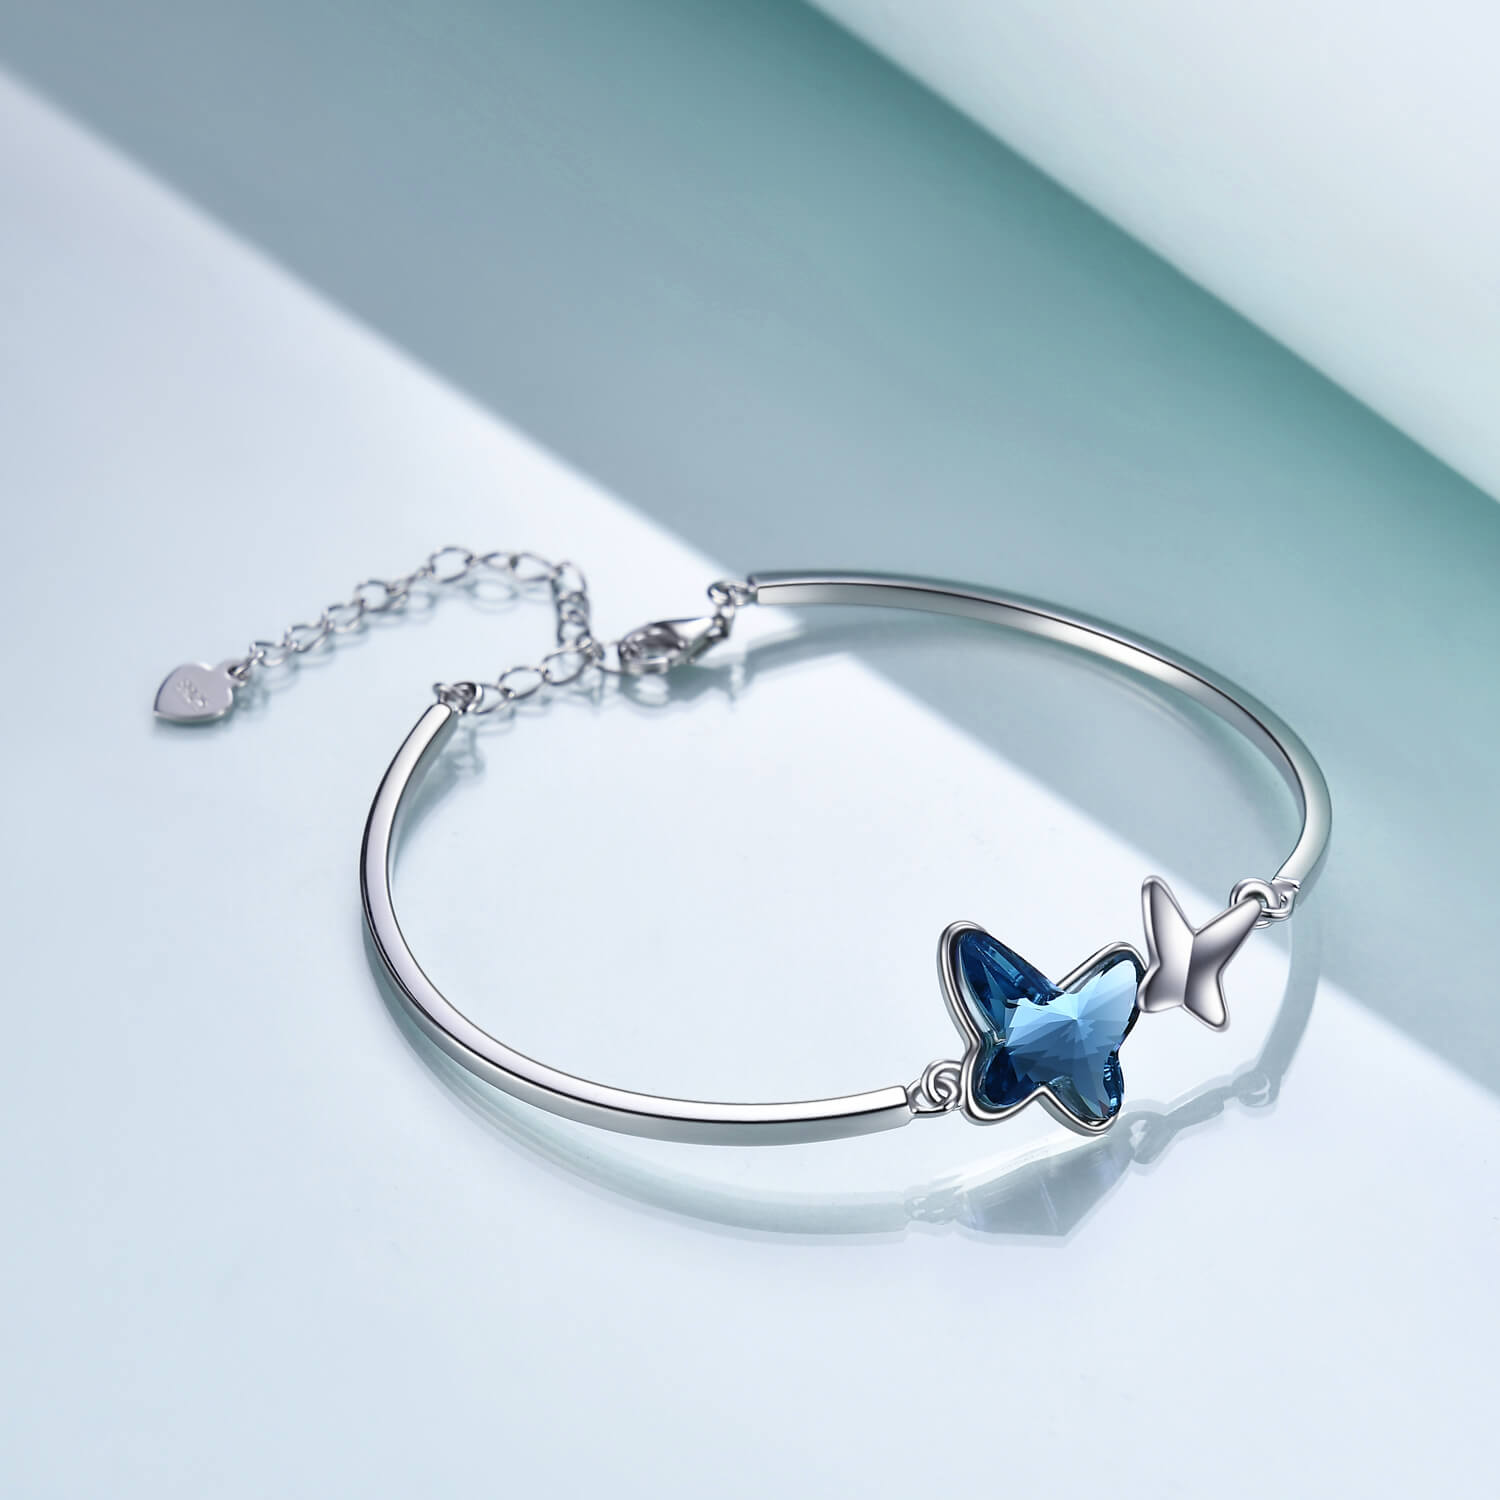 925 Sterling Silver Blue Butterfly Swarovski Crystal Bangle Bracelet Birthday Gift for Women Girls - onlyone